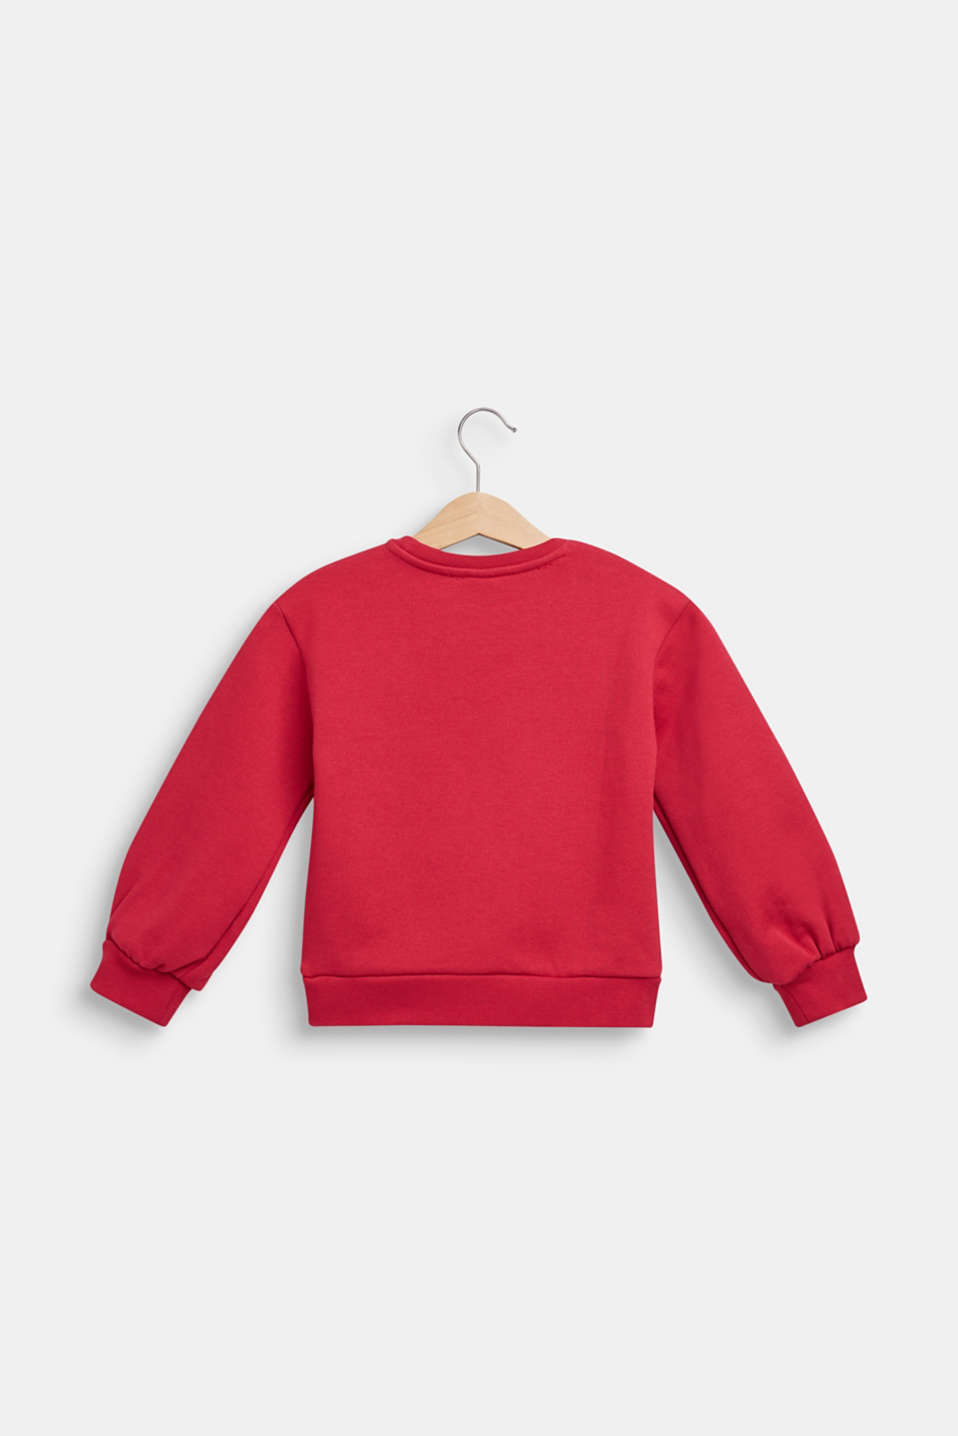 Sweatshirt in 100% cotton, CHOCKCHERRY, detail image number 1